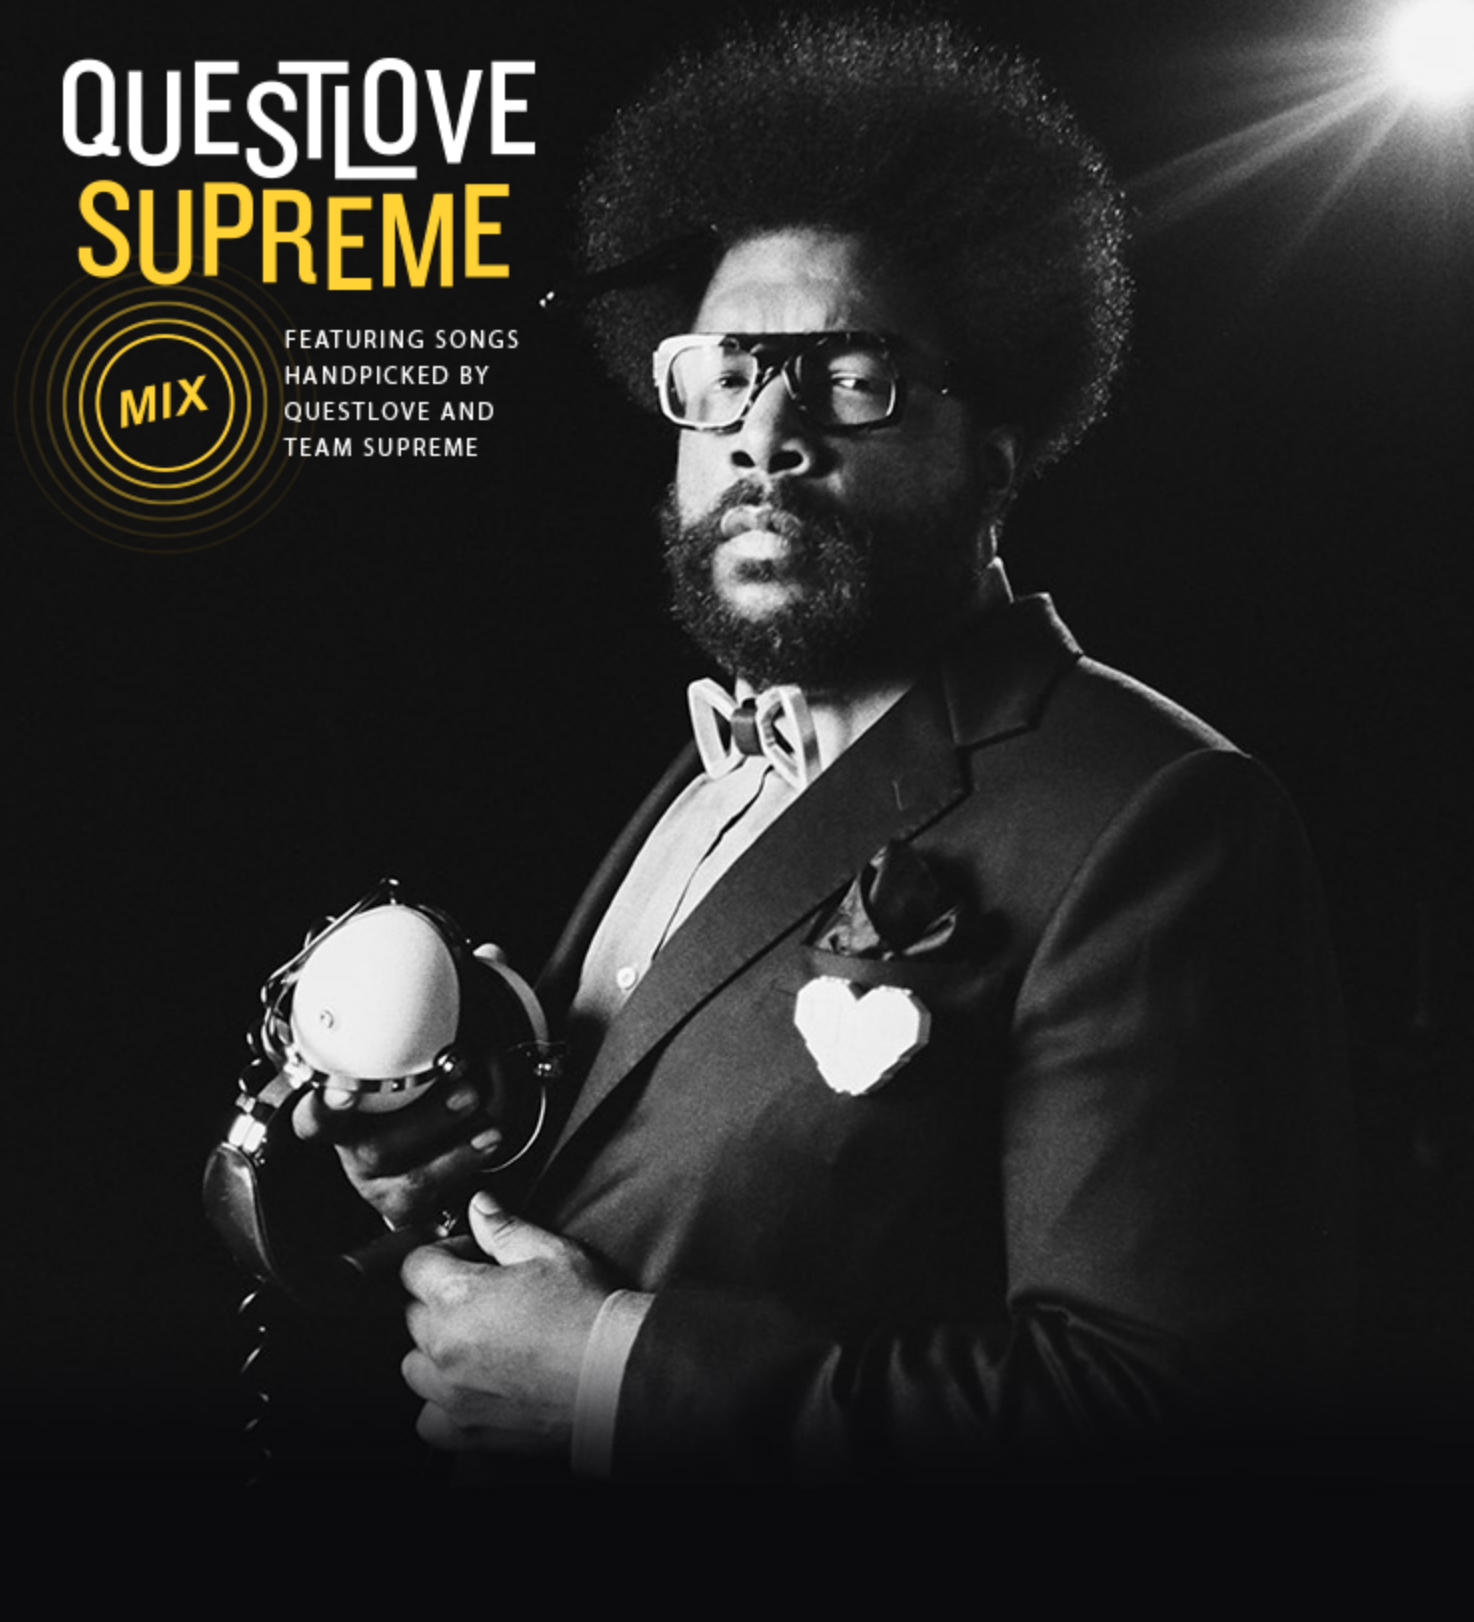 QUESTLOVE SUPREME  Provided display copy, episode descriptions, and interview questions for Questlove Supreme Show.